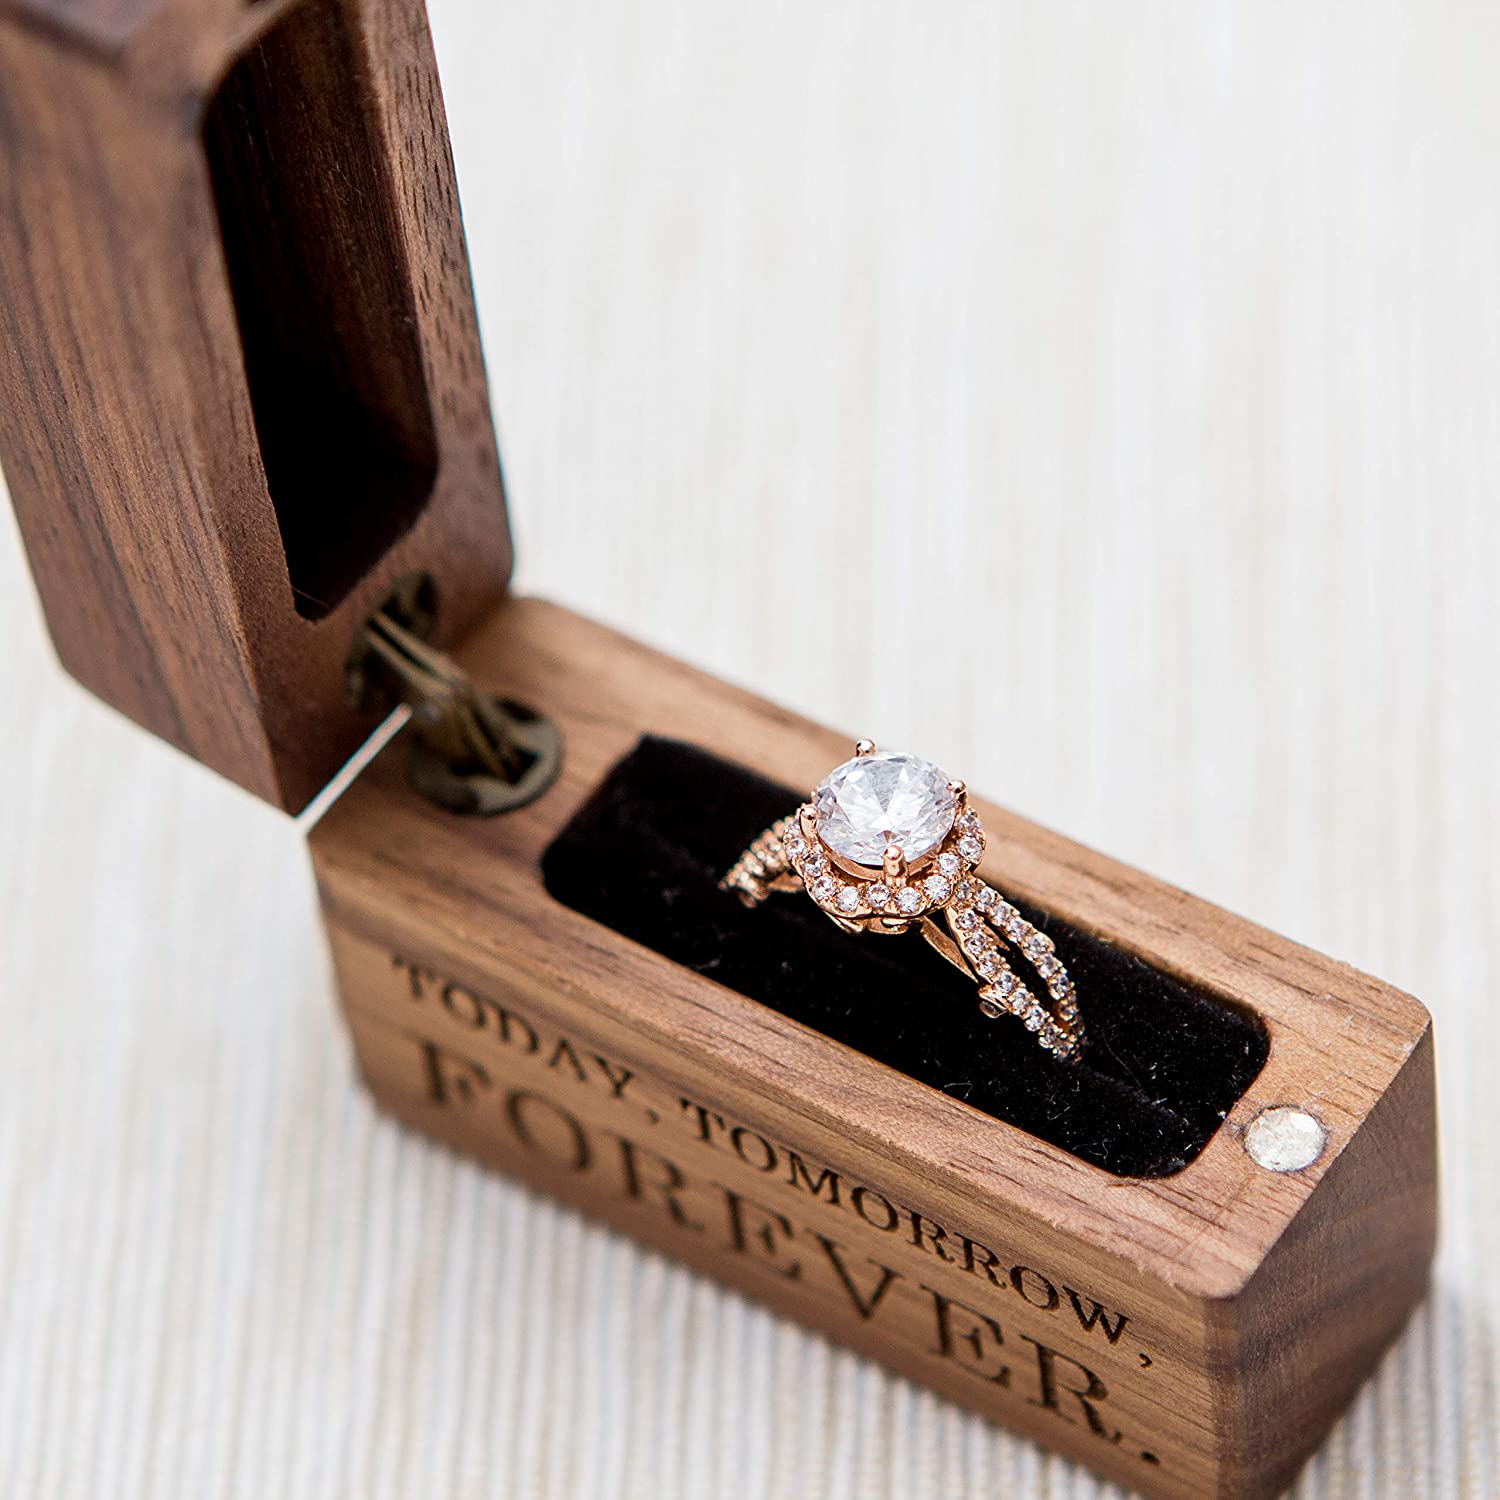 Slim Portable Engagement Ring Box for Proposals, Wedding Ring Storage Engraved Wood Ring Box Today Tomorrow Forever